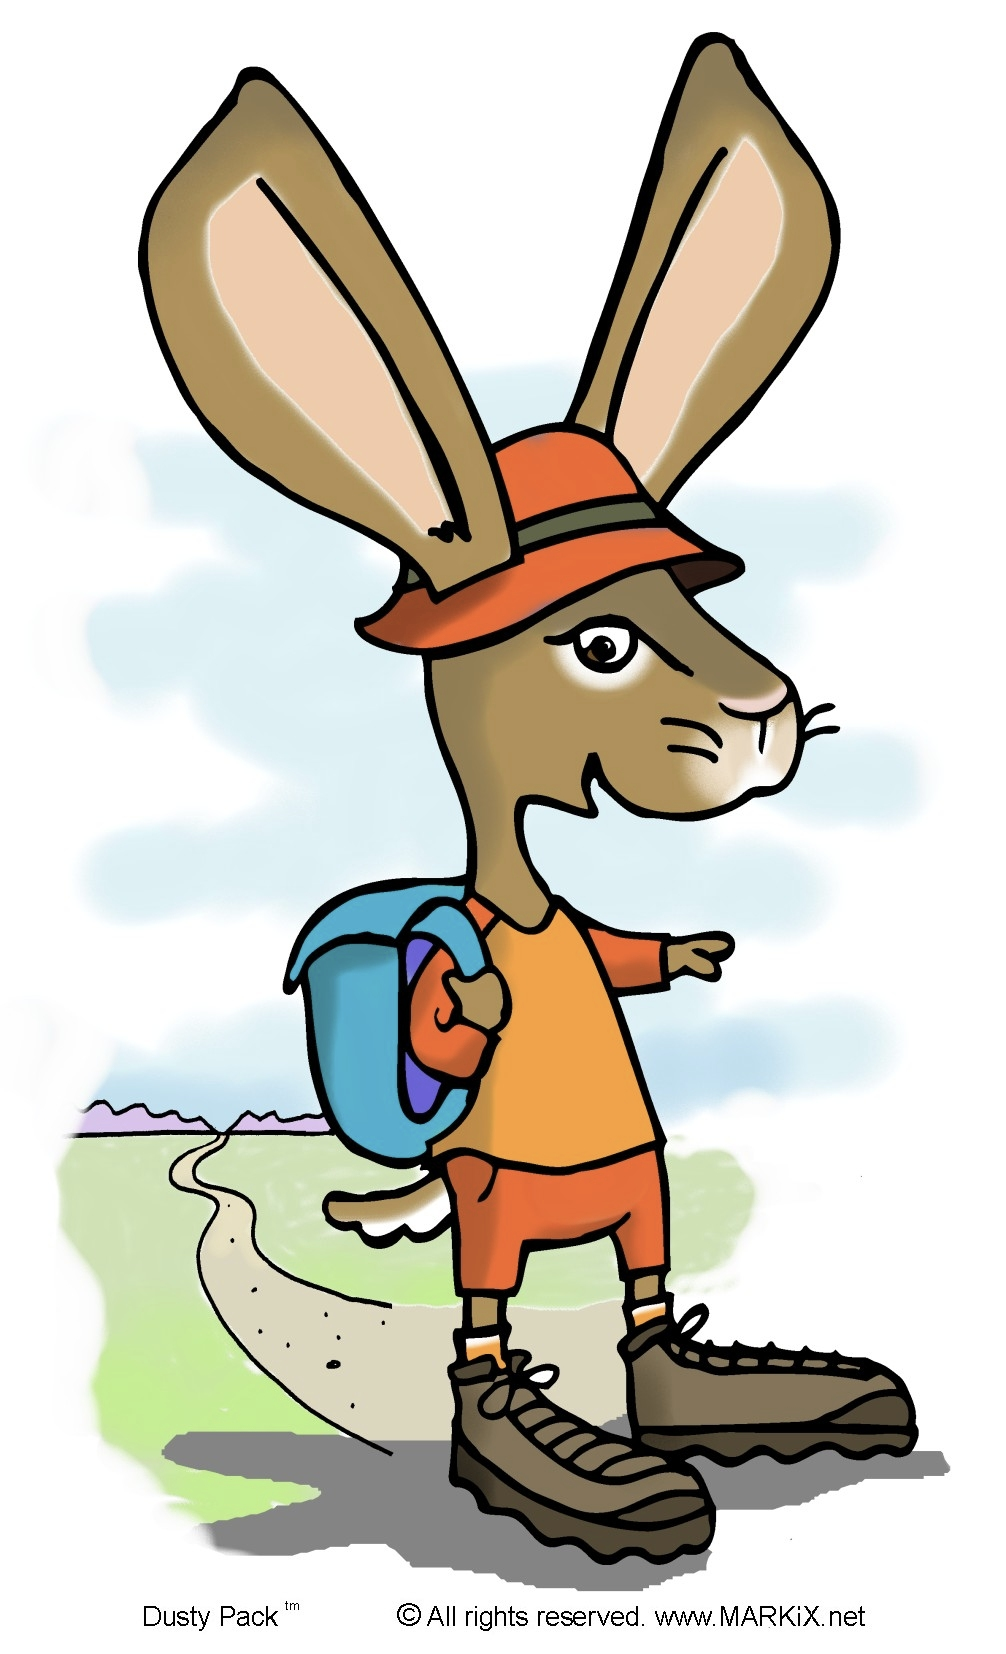 Dusty Pack the hiking, backpacking jackrabbit